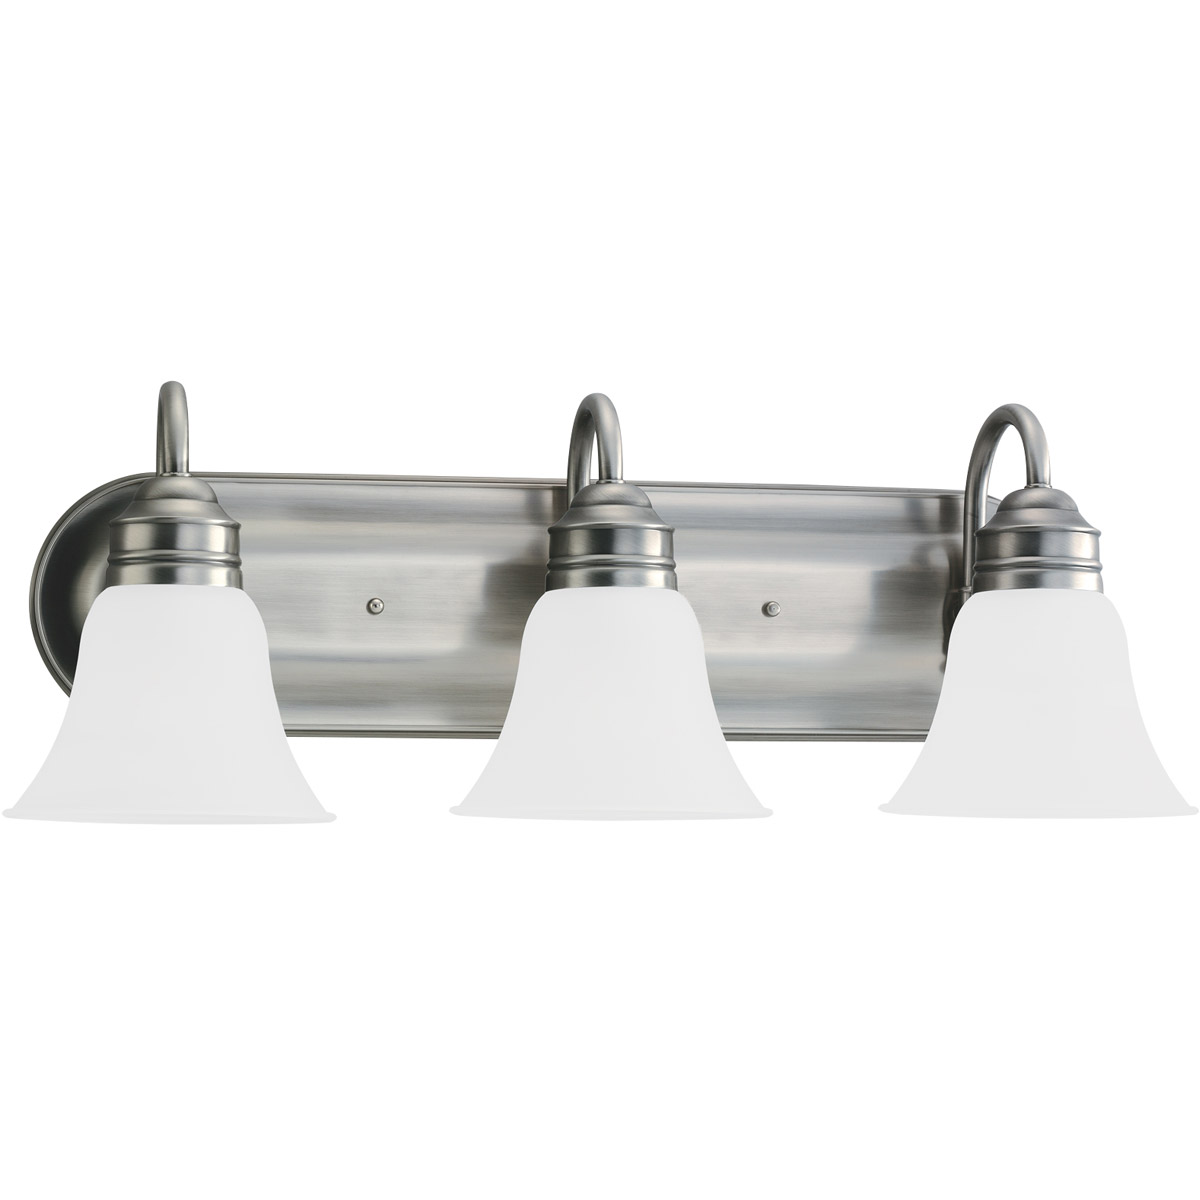 Sea Gull Lighting Gladstone 3 Light Bath Vanity in Antique Brushed Nickel 44852-965